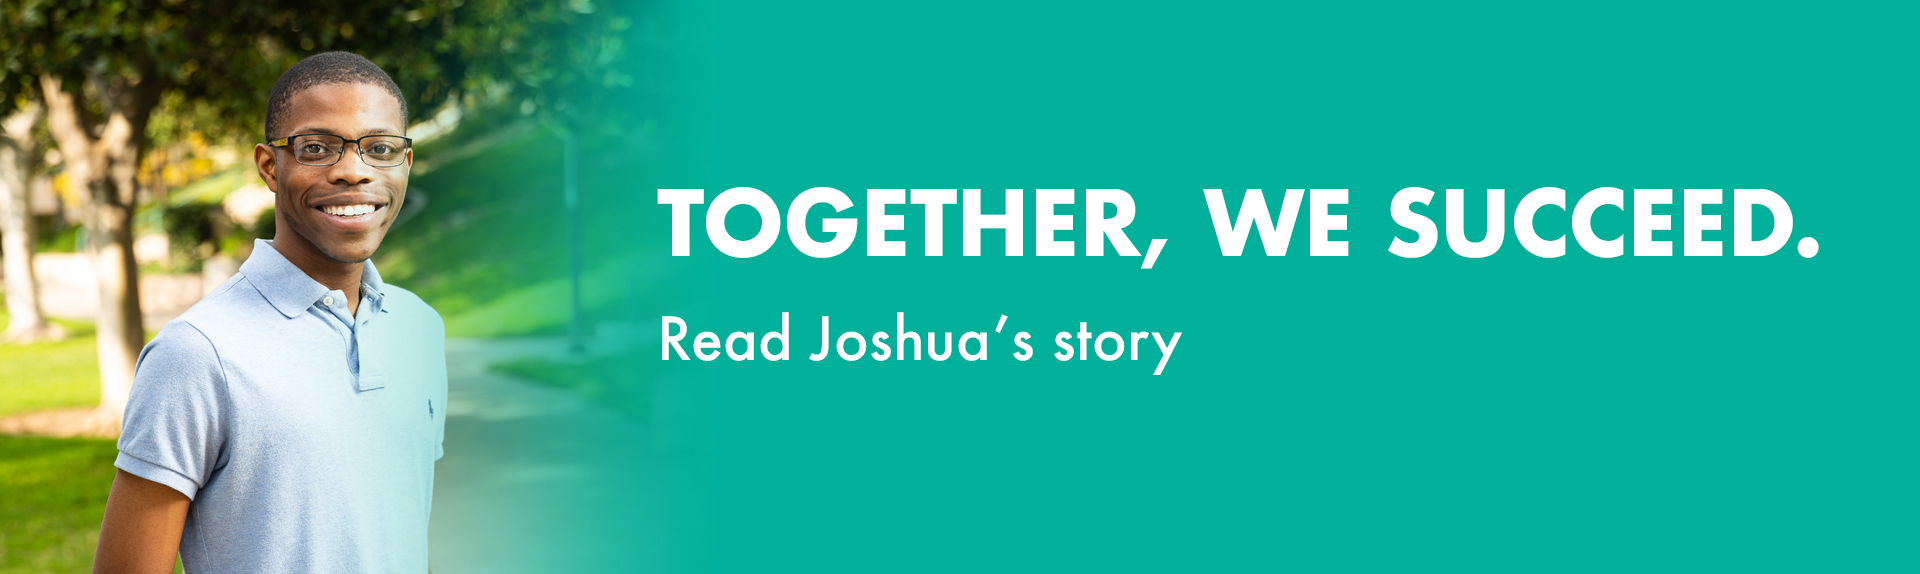 Together, we succeed. Read Josh's story.